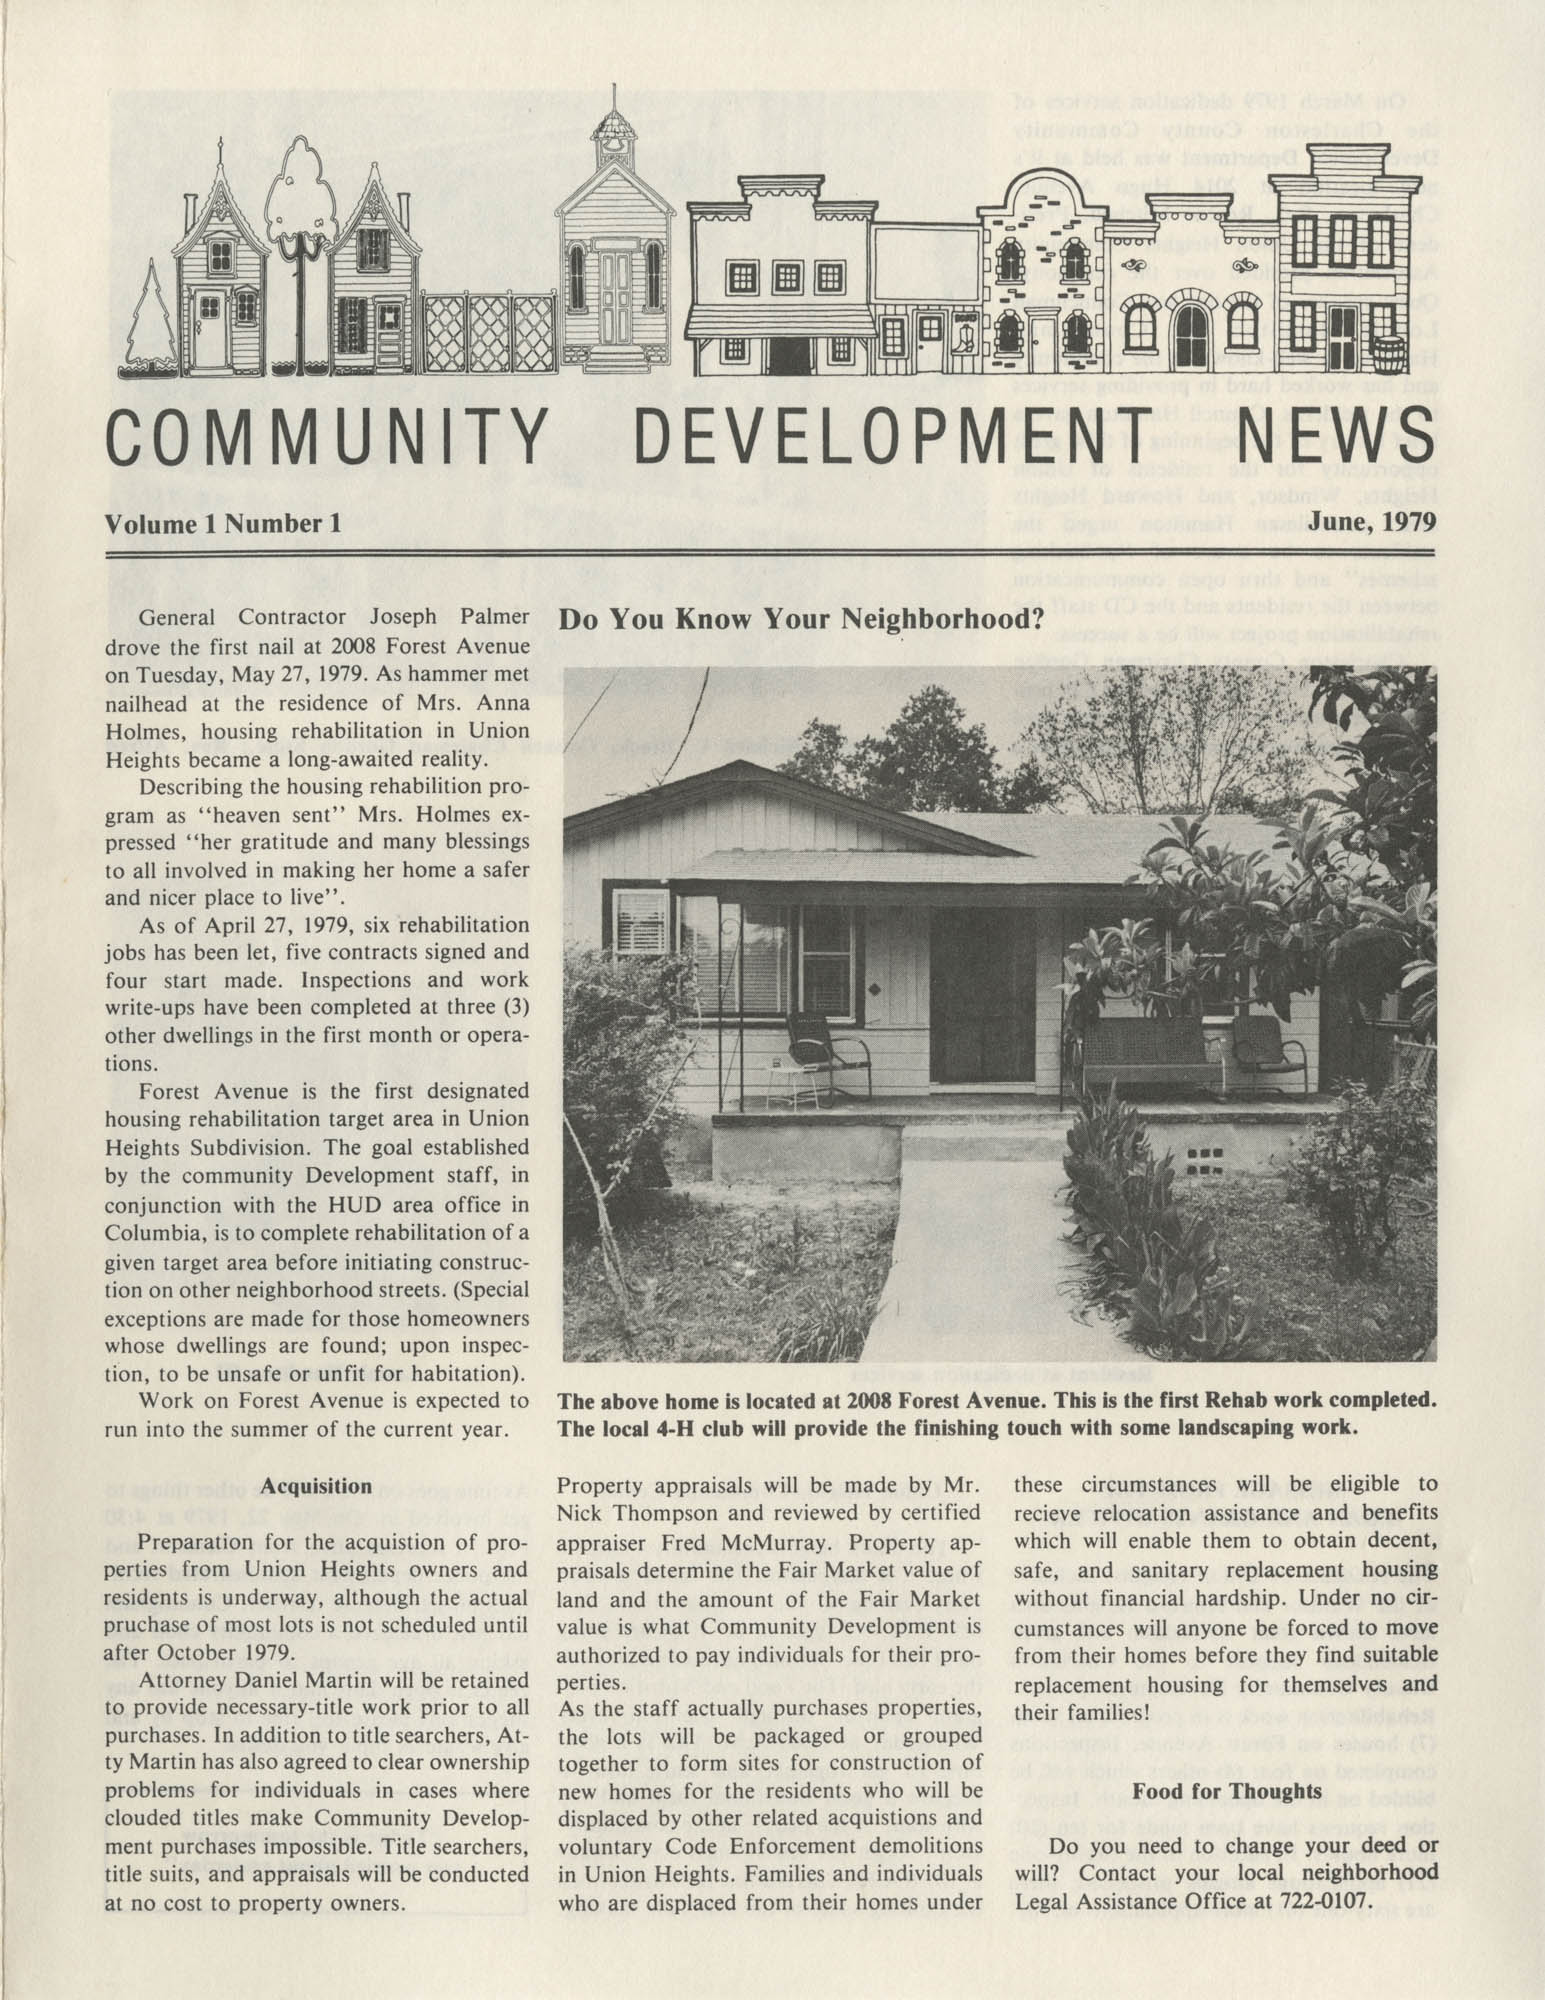 Community Development News, Volume I, Number I